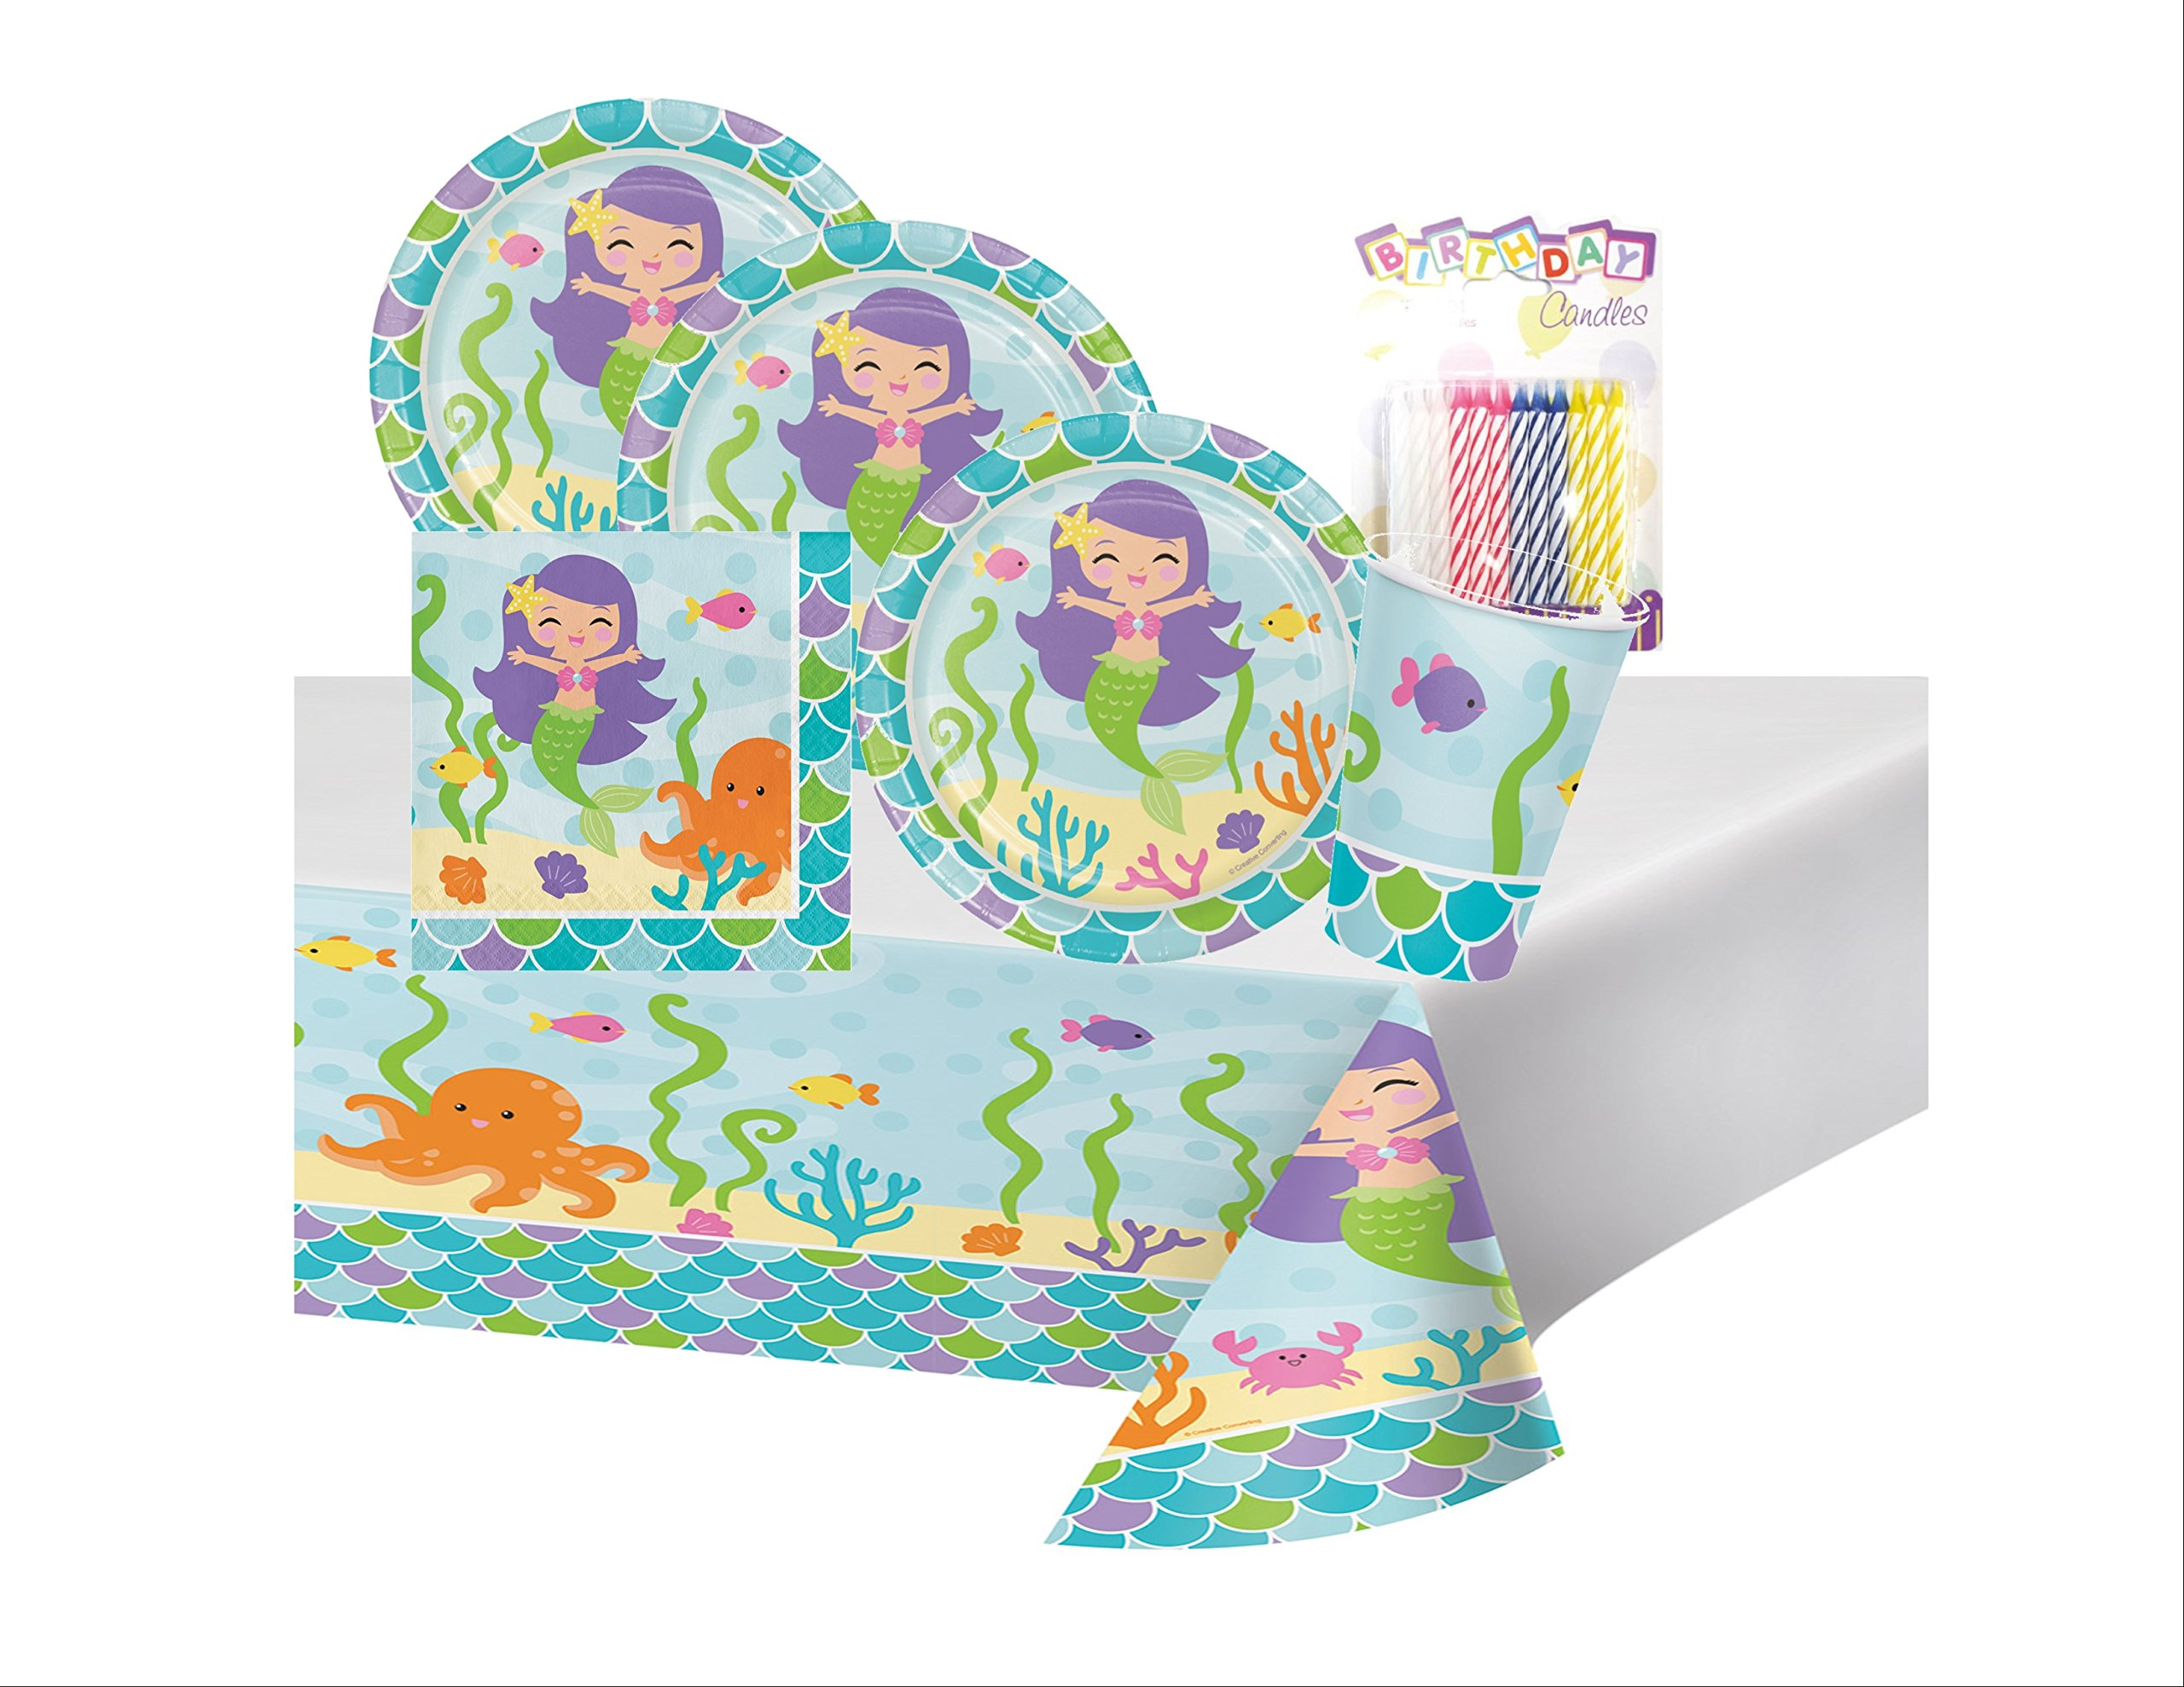 Mermaid Friends Birthday Party Supplies Pack Serves 16: Dinner Plates, Luncheon Napkins, Cups, Table Cover and Birthday Candles by Lobyn Value Pack